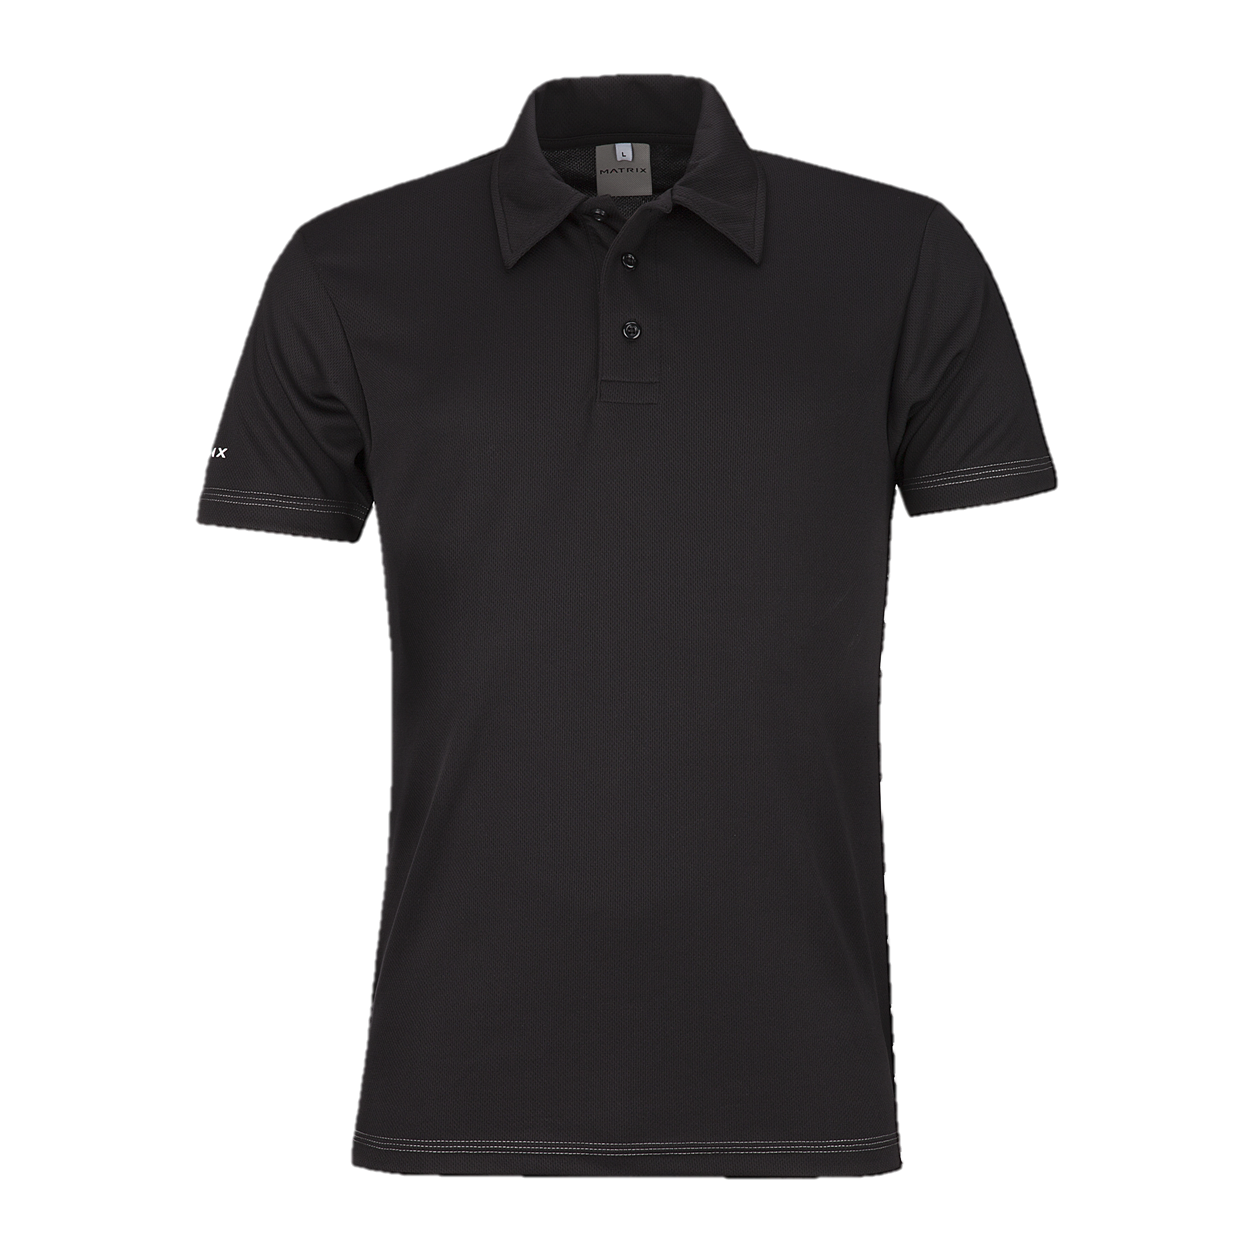 Black polo shirt PNG image